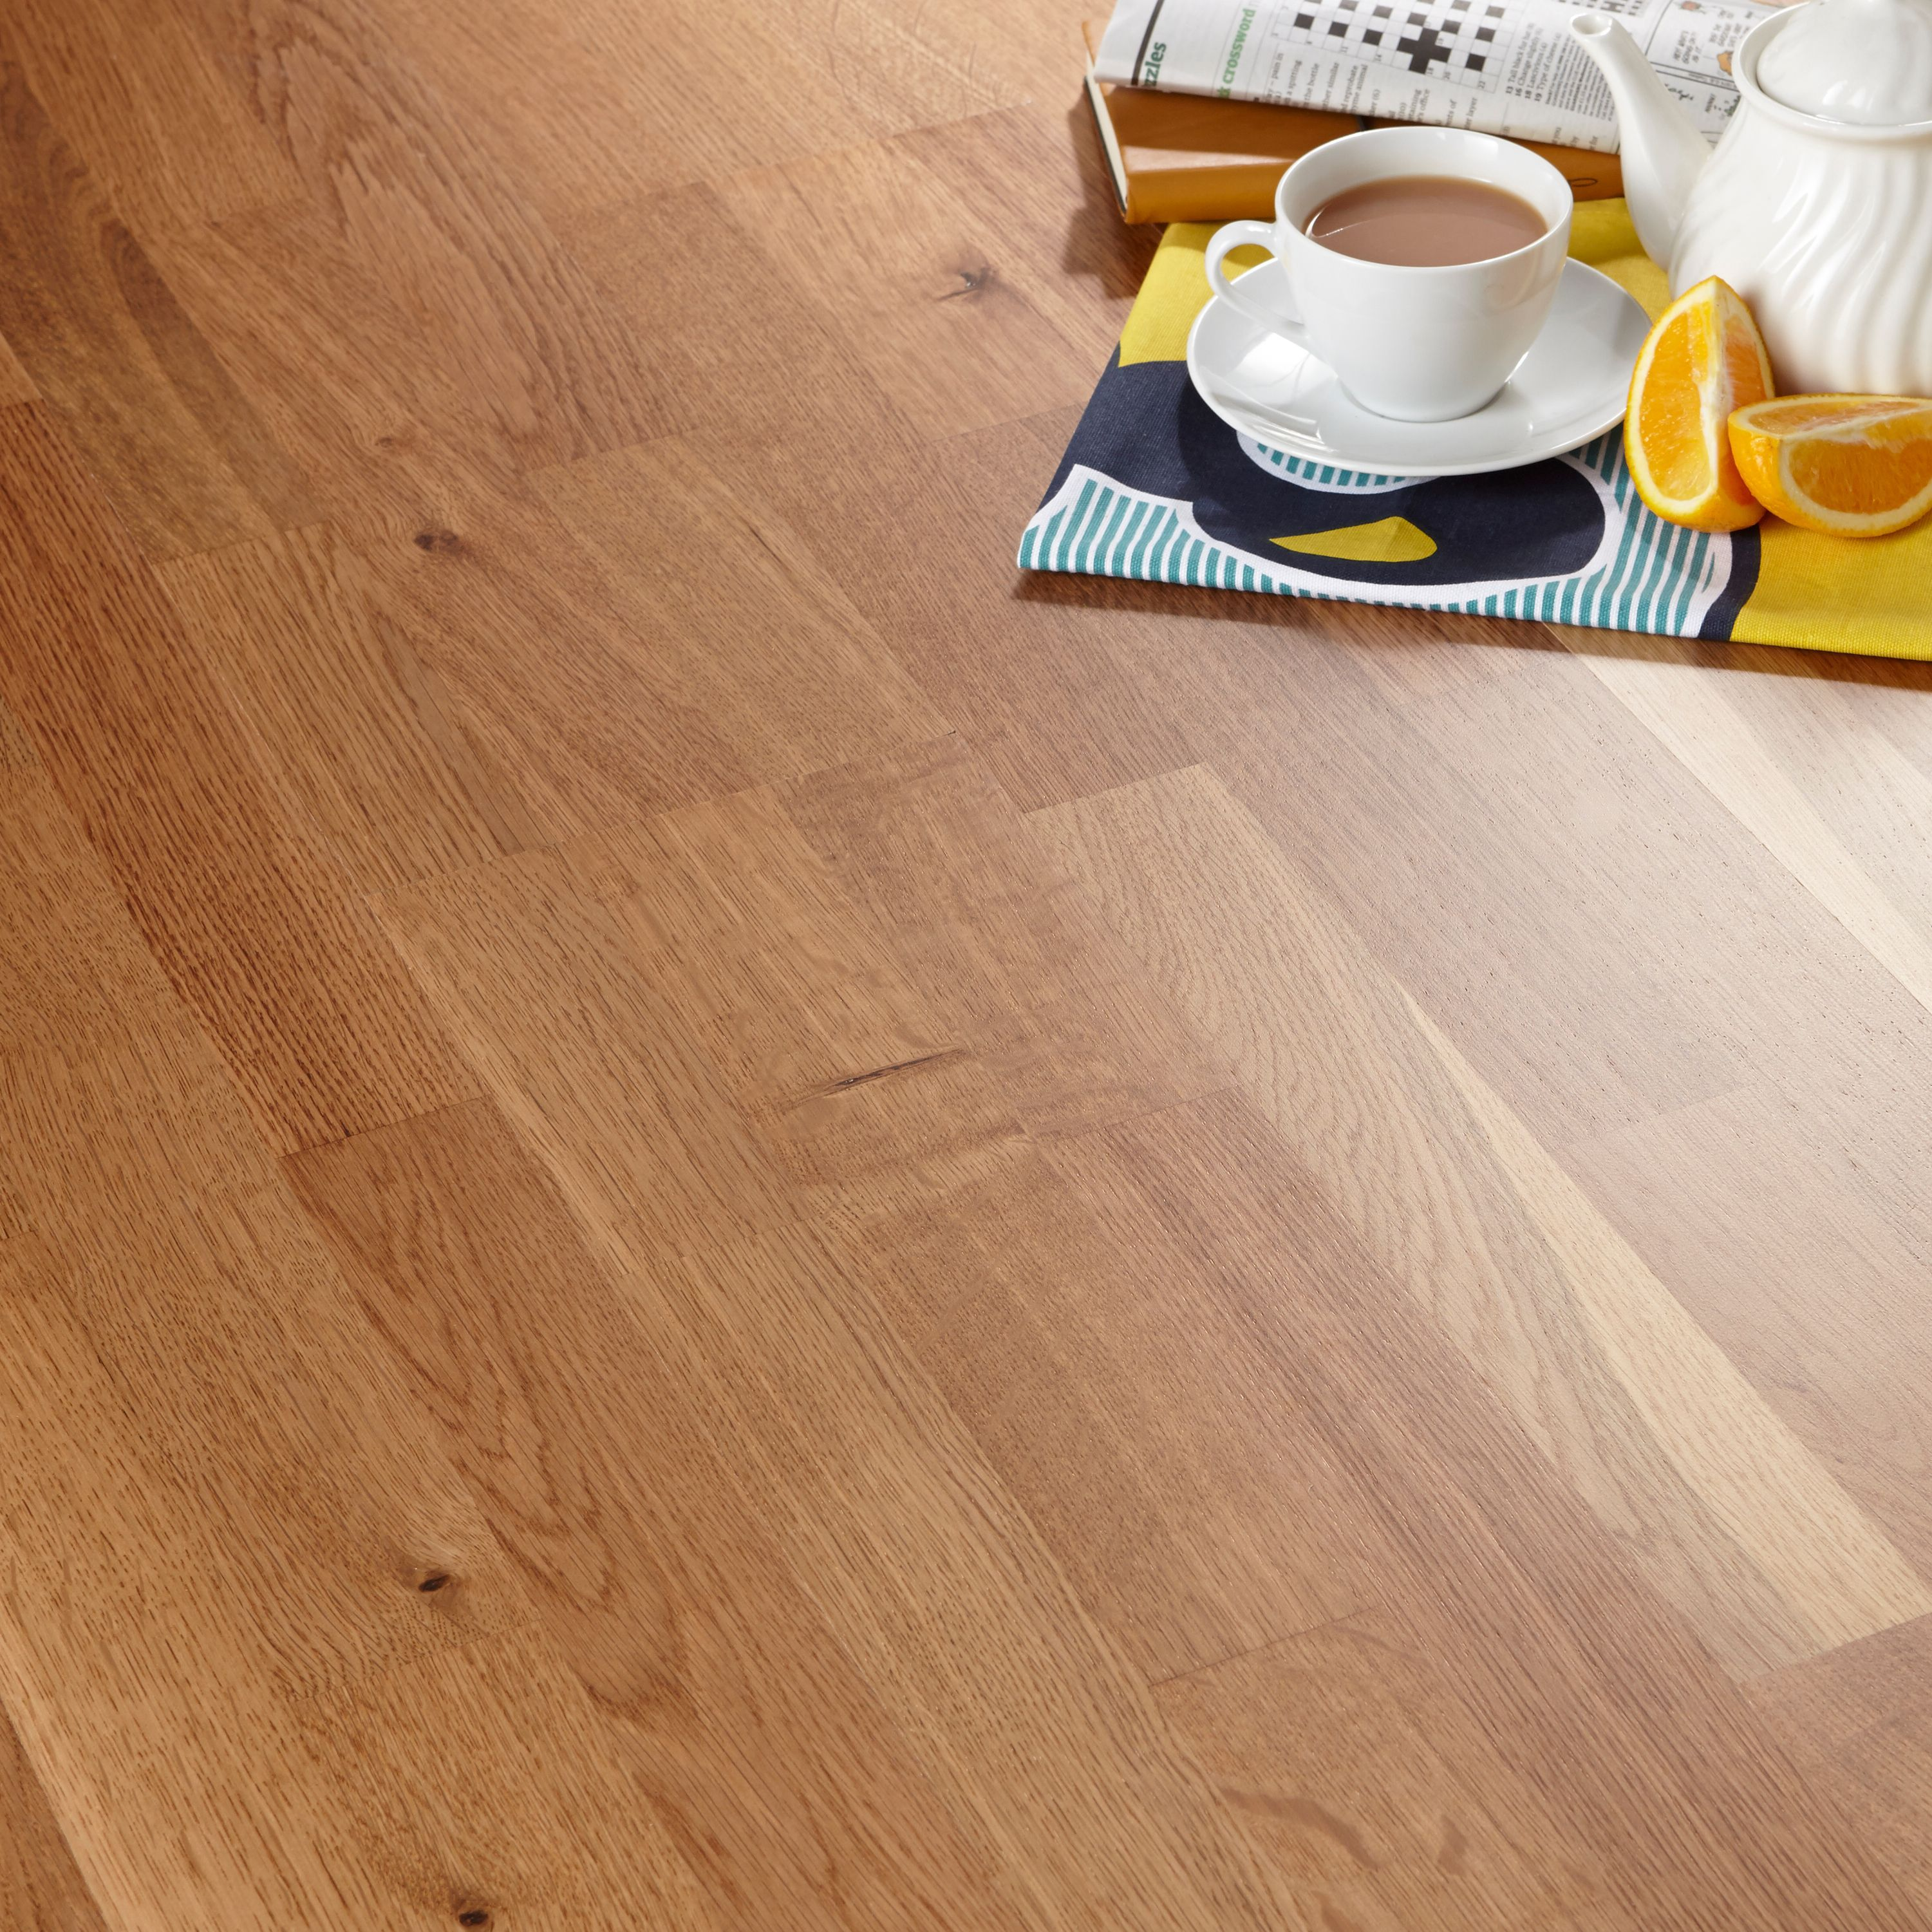 Colours Libretto Smoked Oak Effect Wood Top Layer Flooring 1.58m² Pack